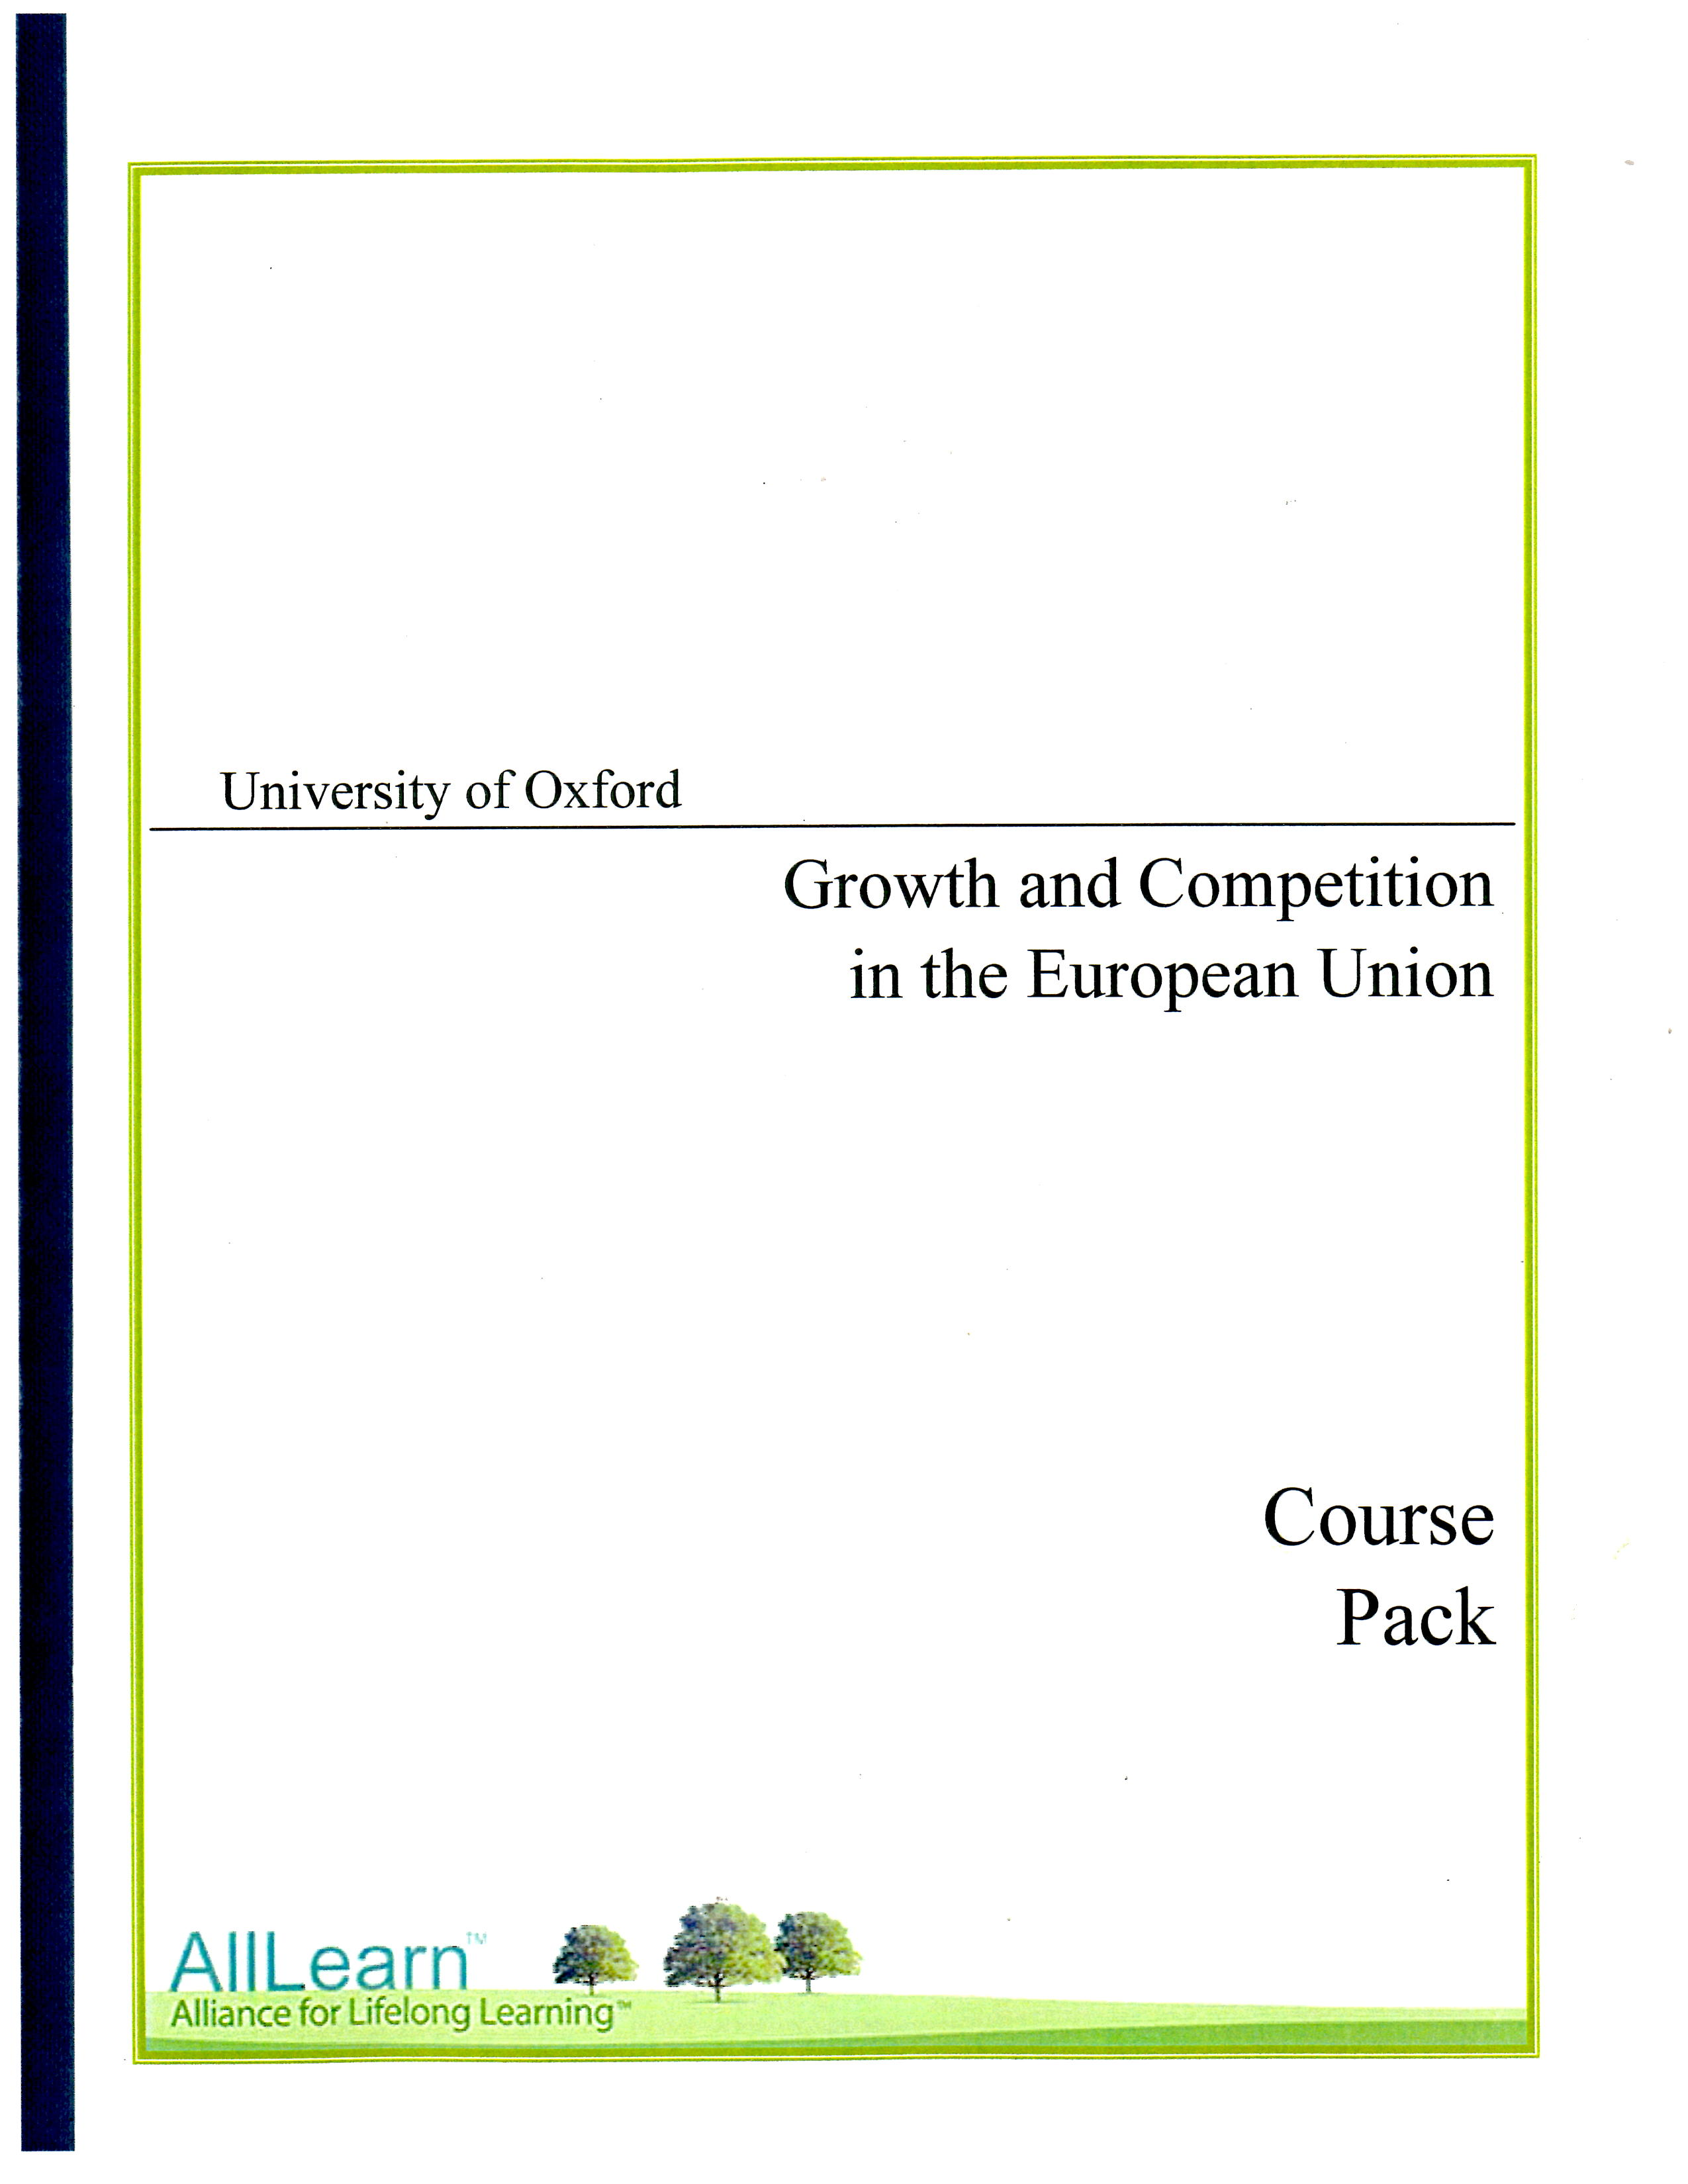 Blog - AllLearn 'Growth & Competition in the EU - Oxford